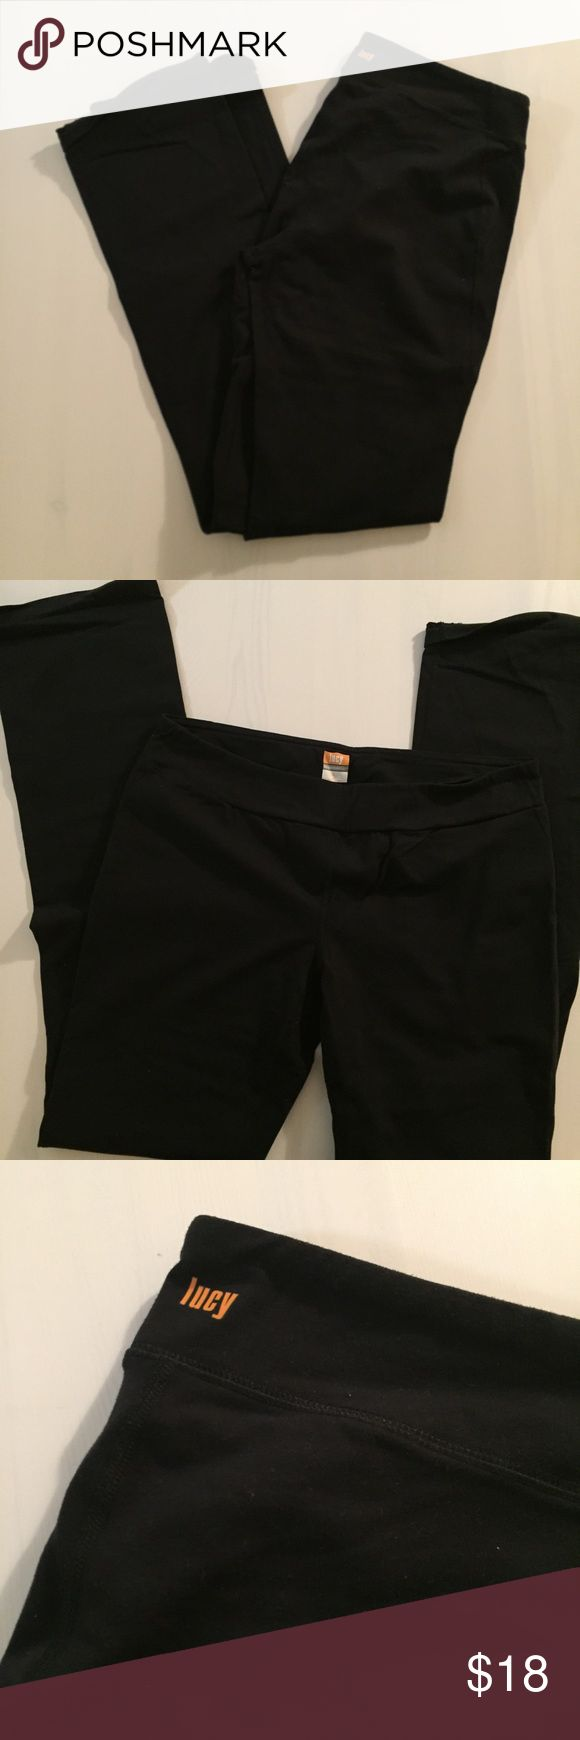 Lucy PowerMax Tall Yoga Pant Lucy PowerMax Tall Yoga Pant. Fitted through the calf - worn but perfect for yoga or running. Small pocket for keys inside the waistband. LOFT Pants Track Pants & Joggers